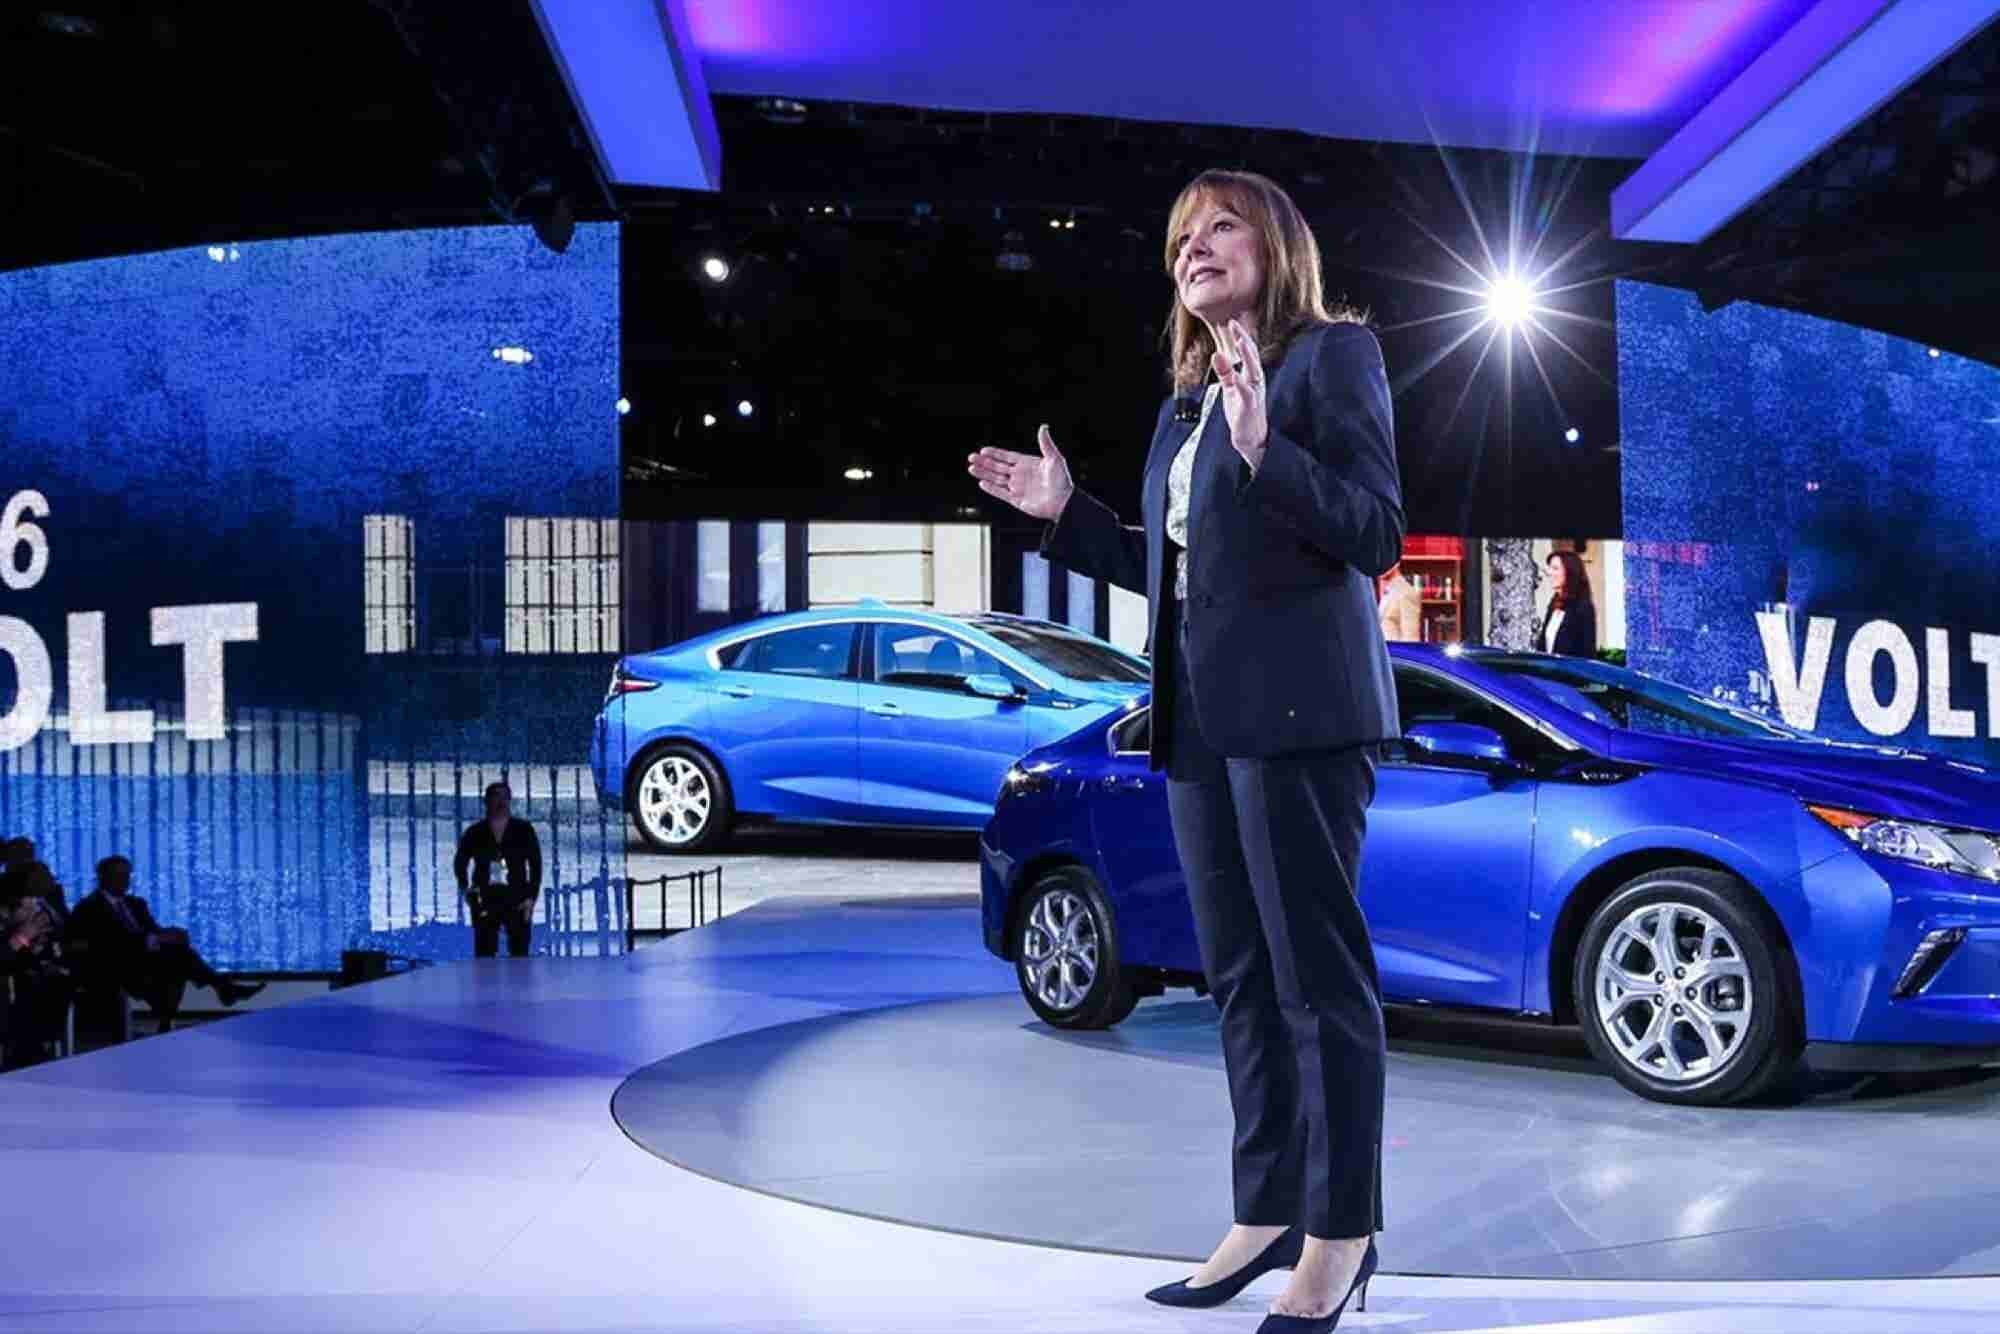 Mary Barra Has Time to Respond. So Should You.